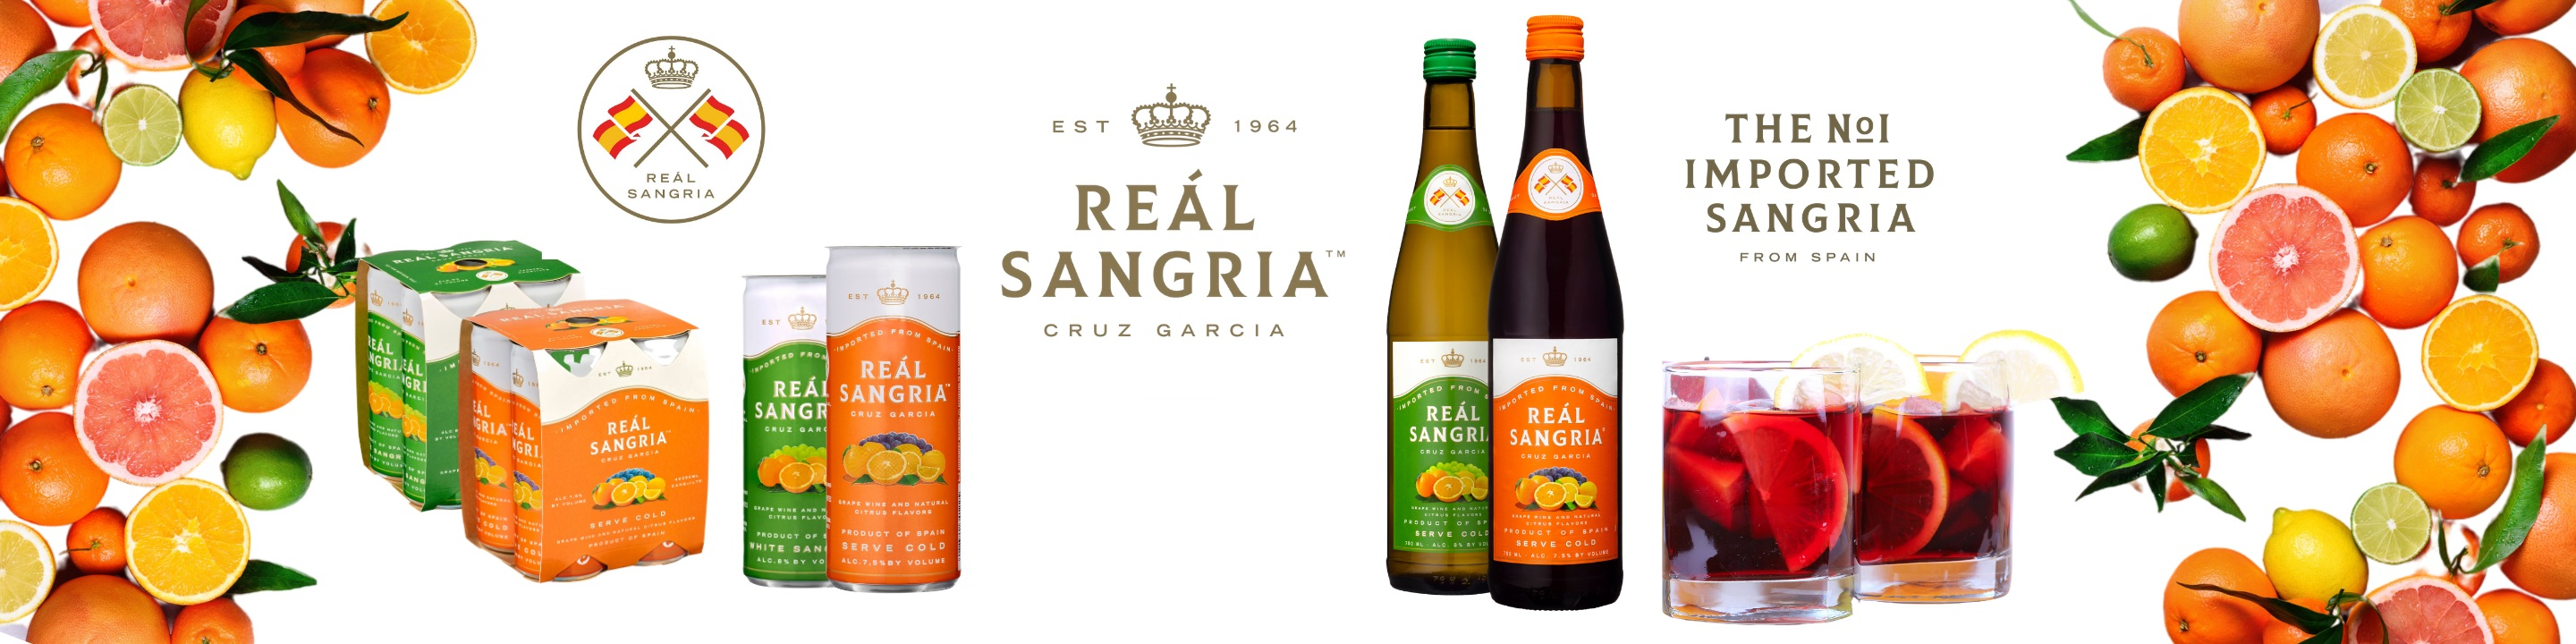 A true and authentic Sangria imported from Spain. Made  100%  from Spanish and natural citrus fruit flavors creating an authentic Spanish Sangria.